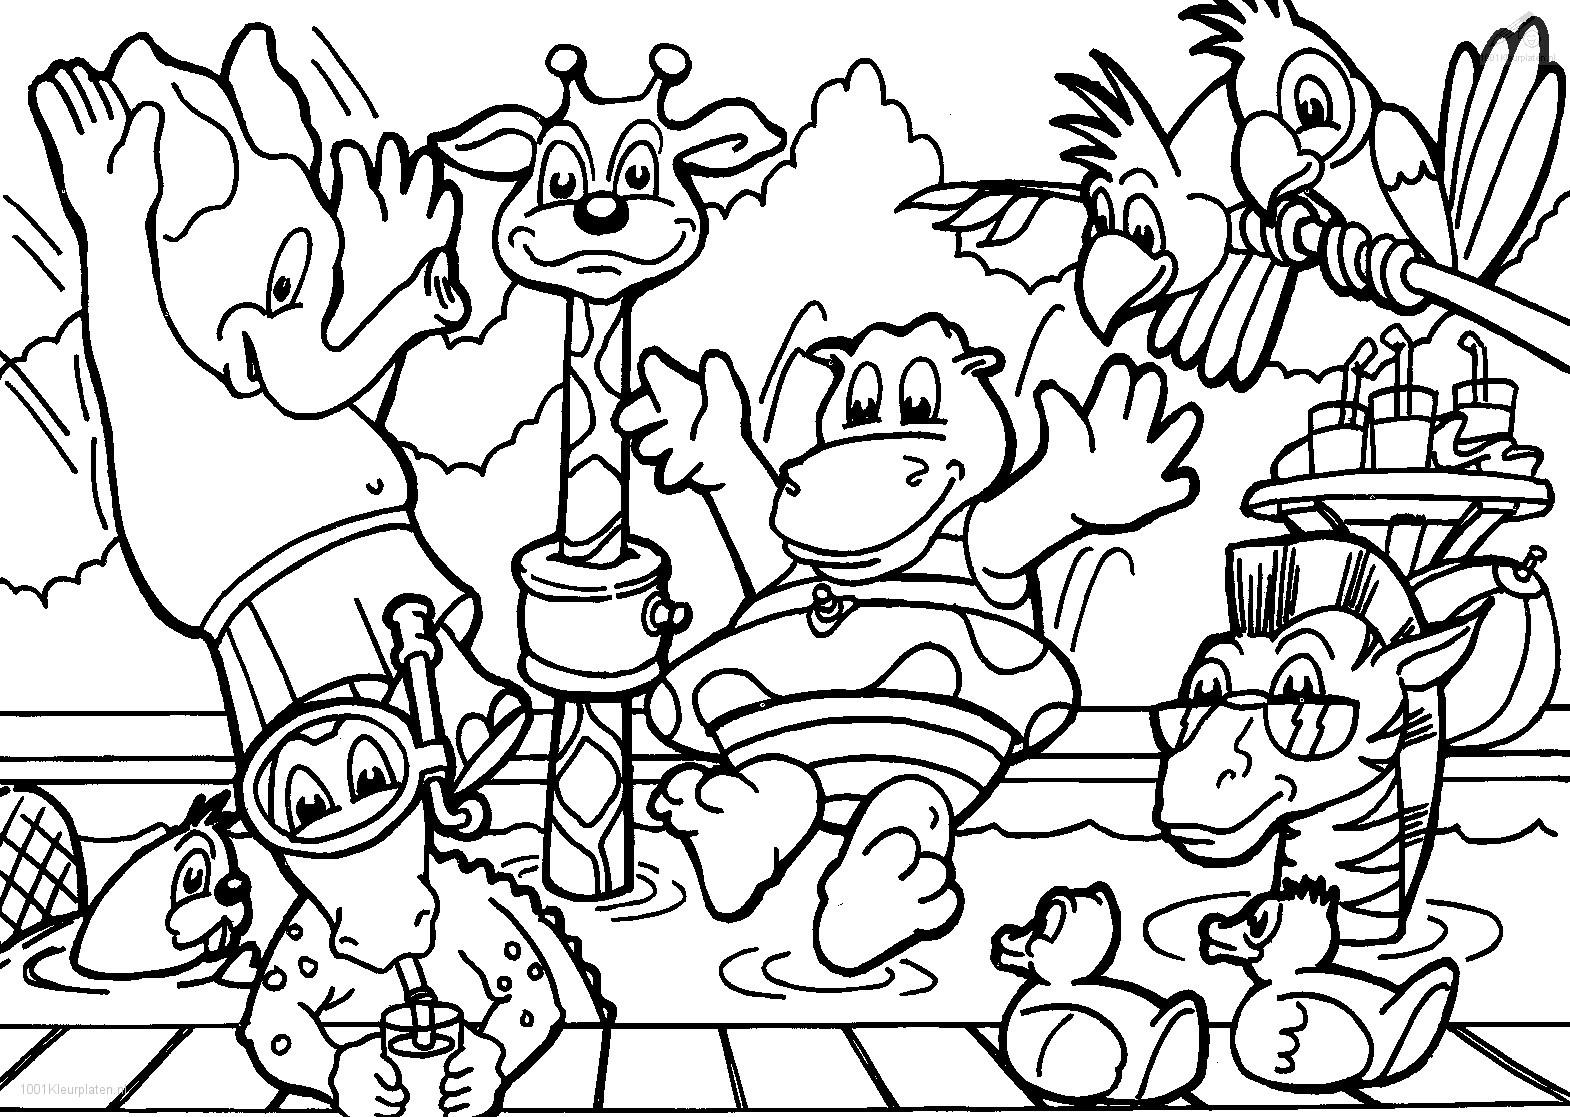 safari animal coloring pages jungle animal coloring pages to download and print for free animal pages coloring safari